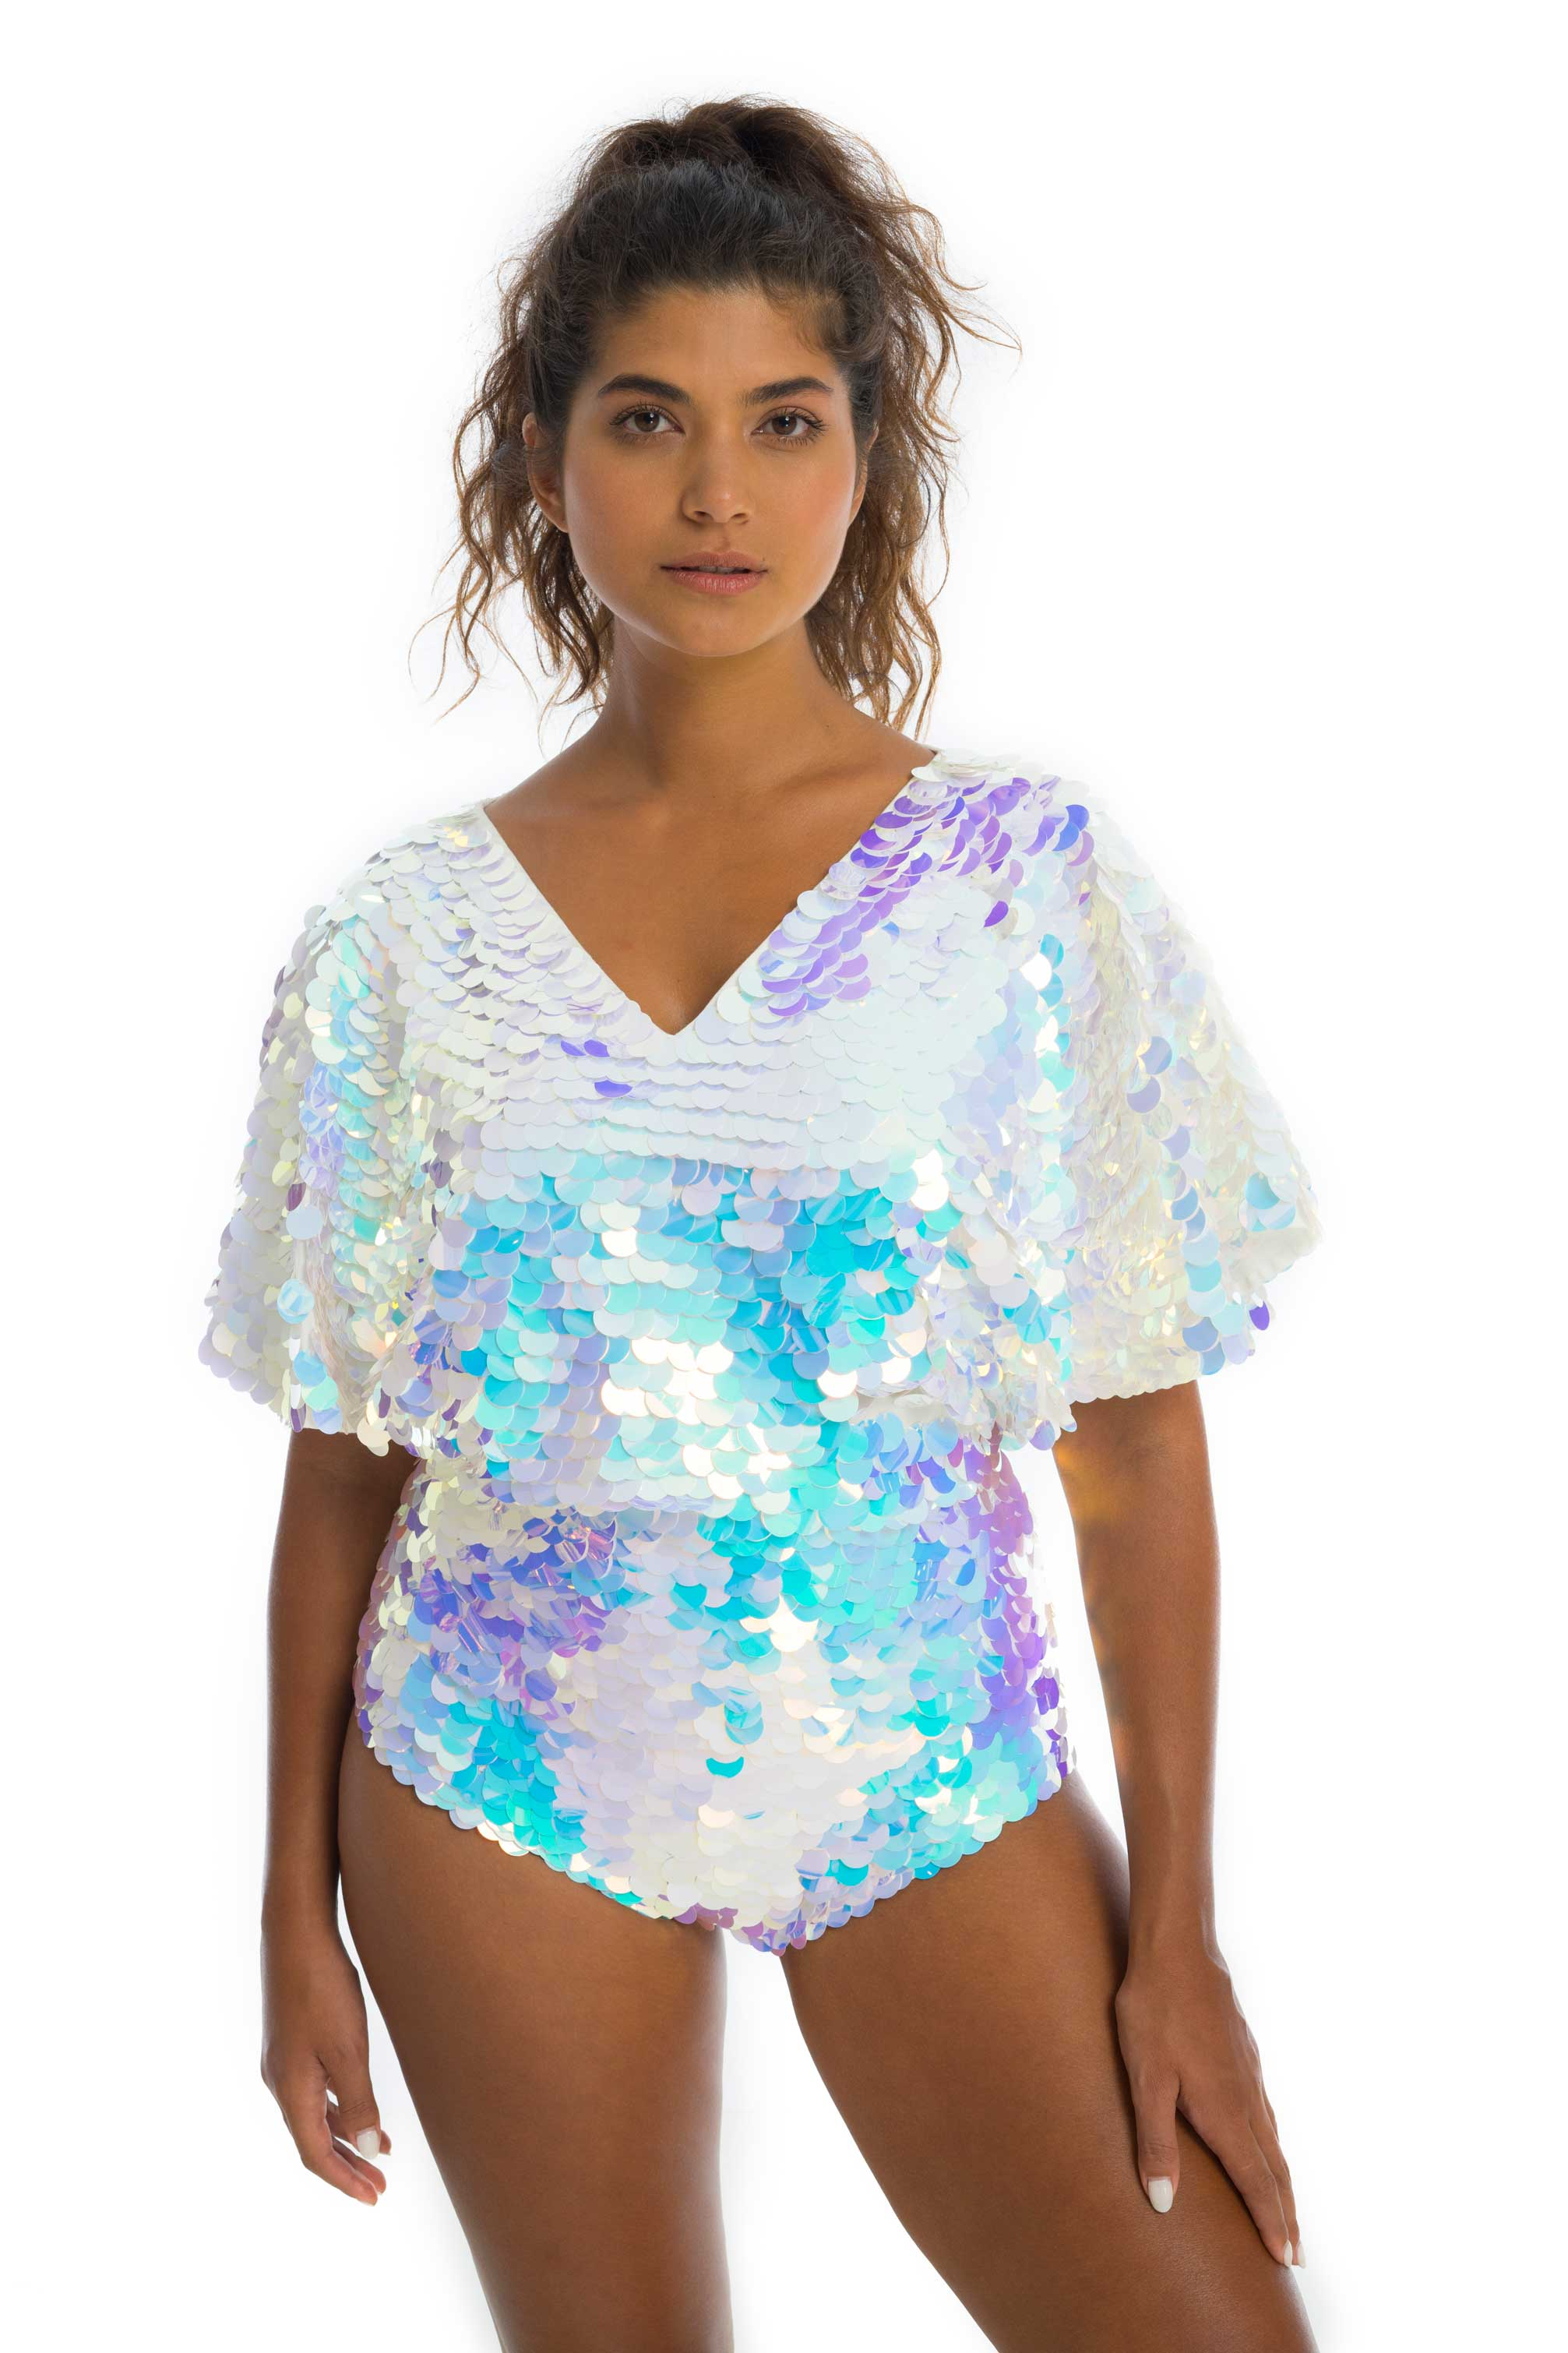 rosa bloom florence cape sleeve top opal white turquoise lilac bridal wedding sequins festival party